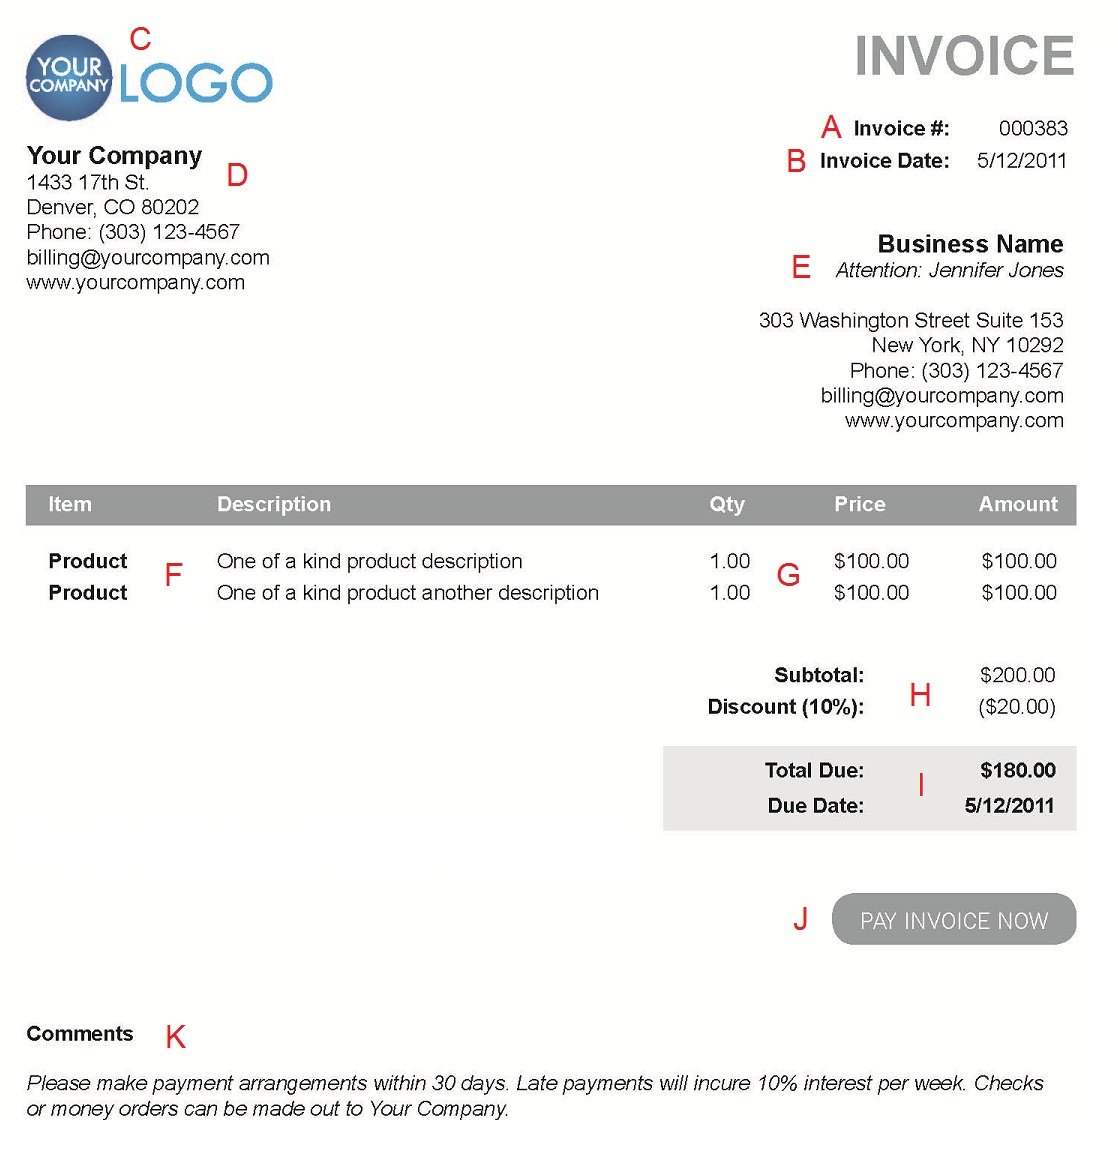 Hucareus  Prepossessing The  Different Sections Of An Electronic Payment Invoice With Interesting A  With Comely Neat Receipt Driver Also Cheap Receipt Scanner In Addition Prime Rib Receipt And Please Acknowledge Upon Receipt Of This Email As Well As Organise Receipts Additionally Gmail Read Receipt Plugin From Paysimplecom With Hucareus  Interesting The  Different Sections Of An Electronic Payment Invoice With Comely A  And Prepossessing Neat Receipt Driver Also Cheap Receipt Scanner In Addition Prime Rib Receipt From Paysimplecom